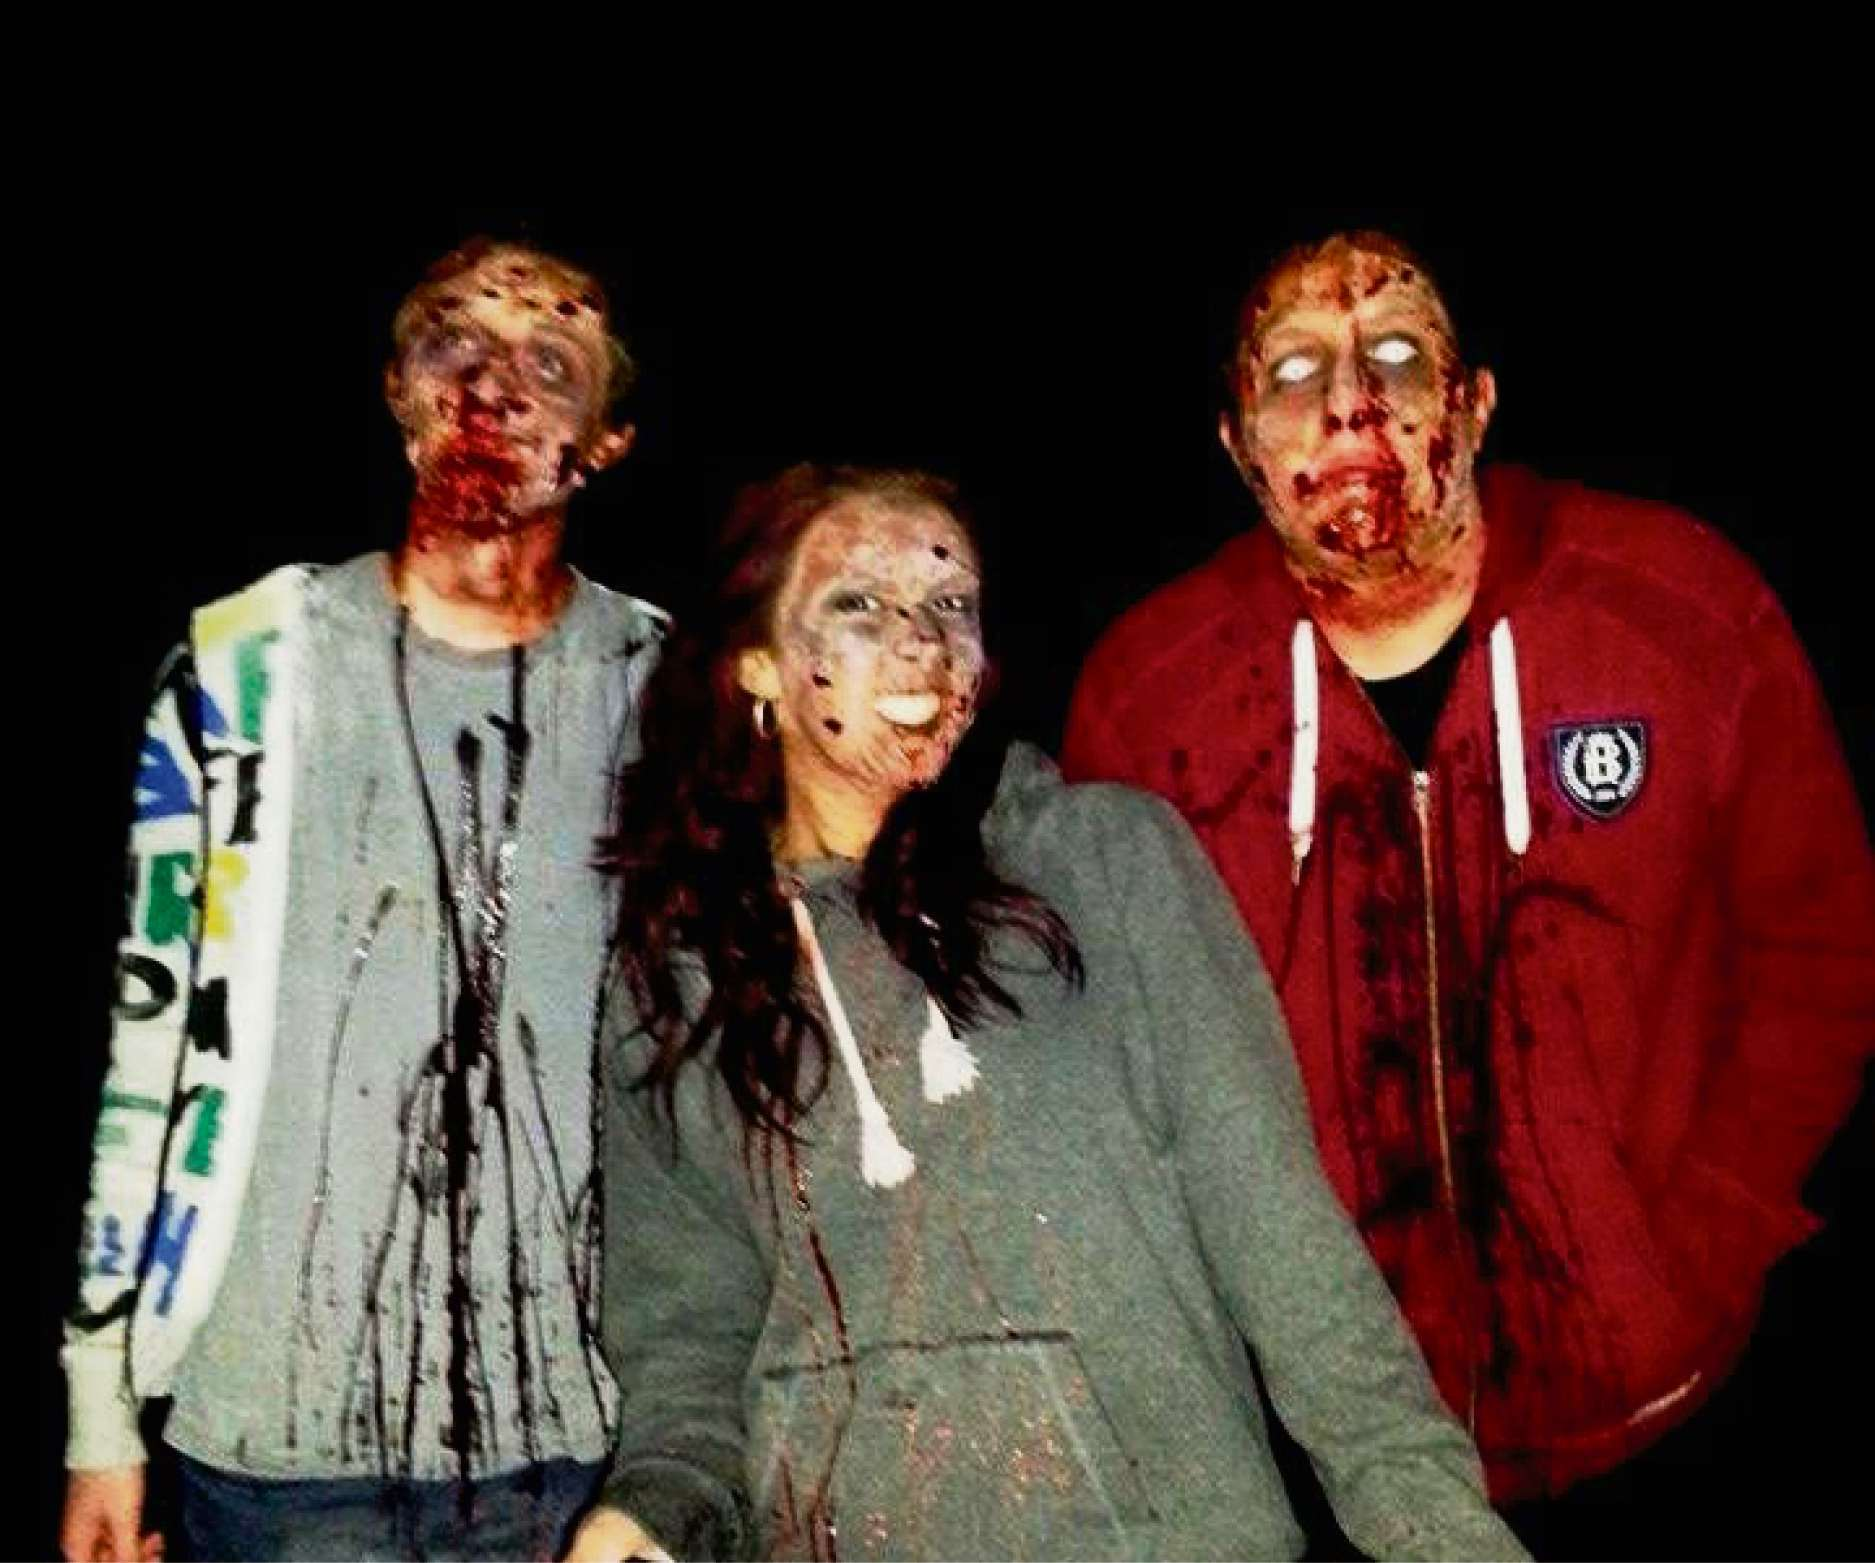 Will Arkle, Polly Barton and Giles McHugh as zombies, filming a trailer for the Infected Britain book series (3267448)